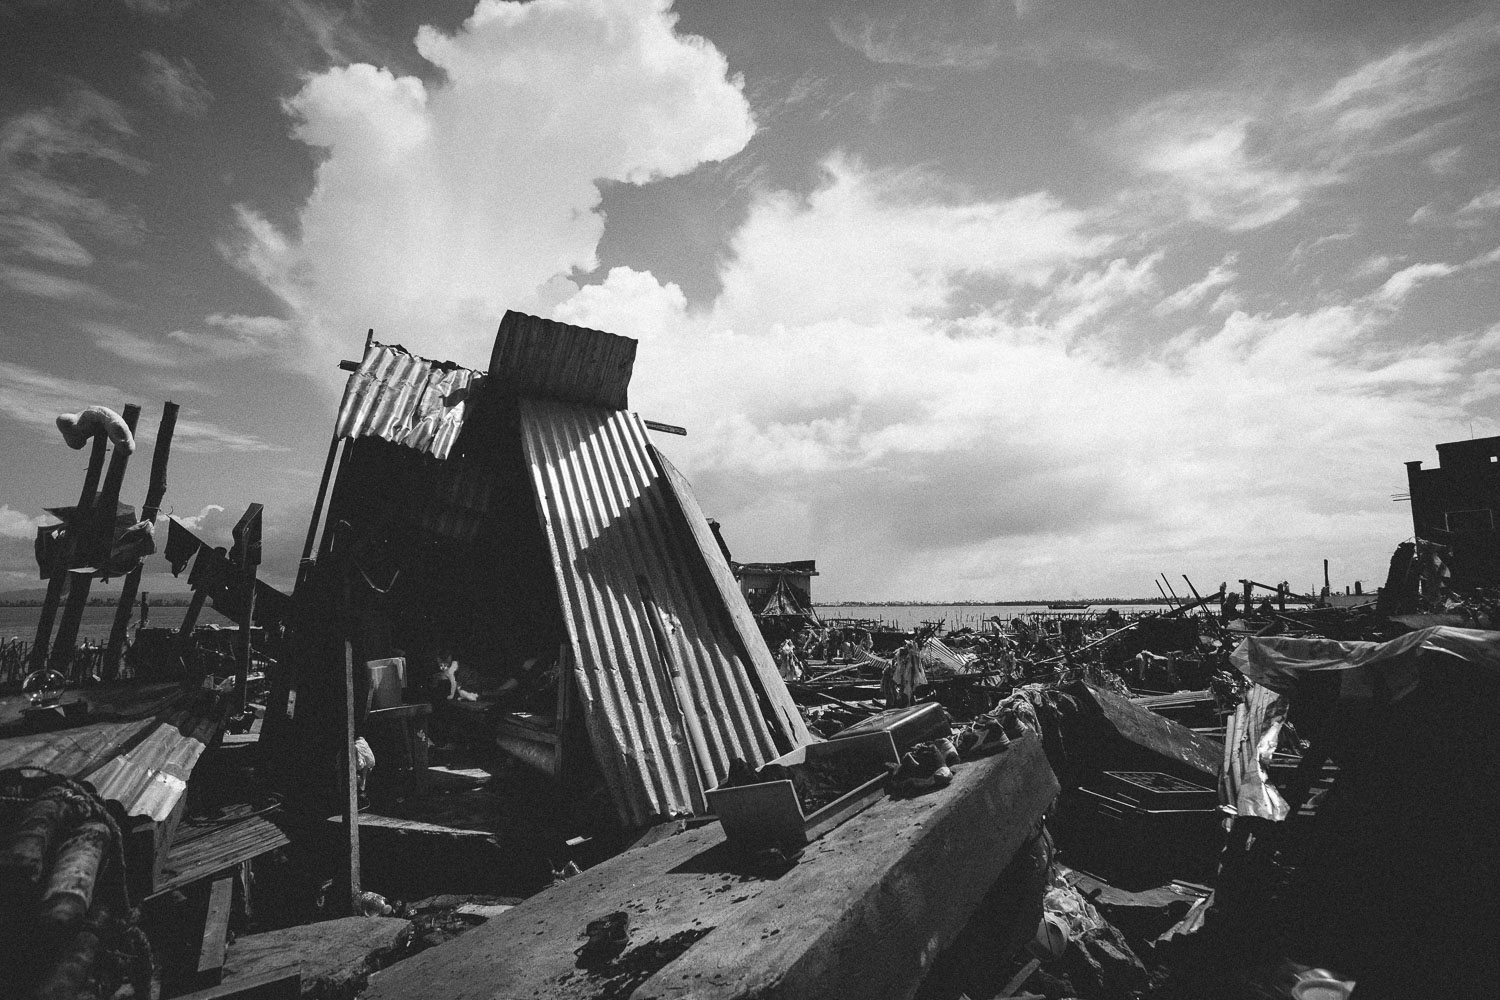 Tacloban City. While providing shade for the burning sun, the many makeshift shelters in the city provide little protection against daily rain bursts, let alone any further storms to come.